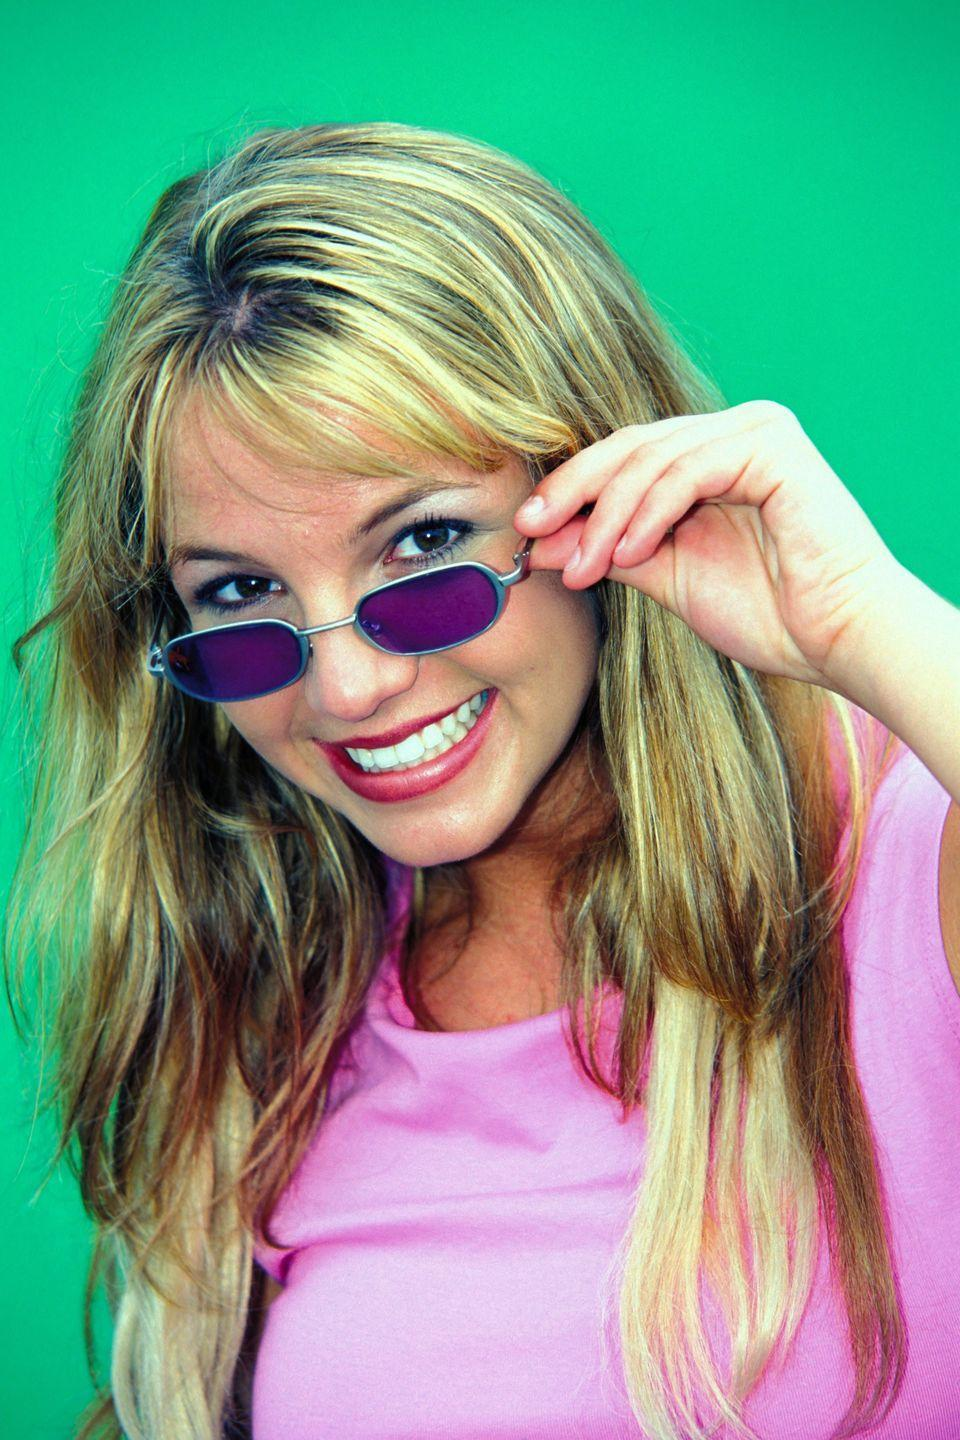 """<p>The world was forever changed when Britney Jean Spears released """"...Baby One More Time"""". Giving her the title 'Princess of Pop', Spears would go on to win numerous awards and influence future generations. </p>"""